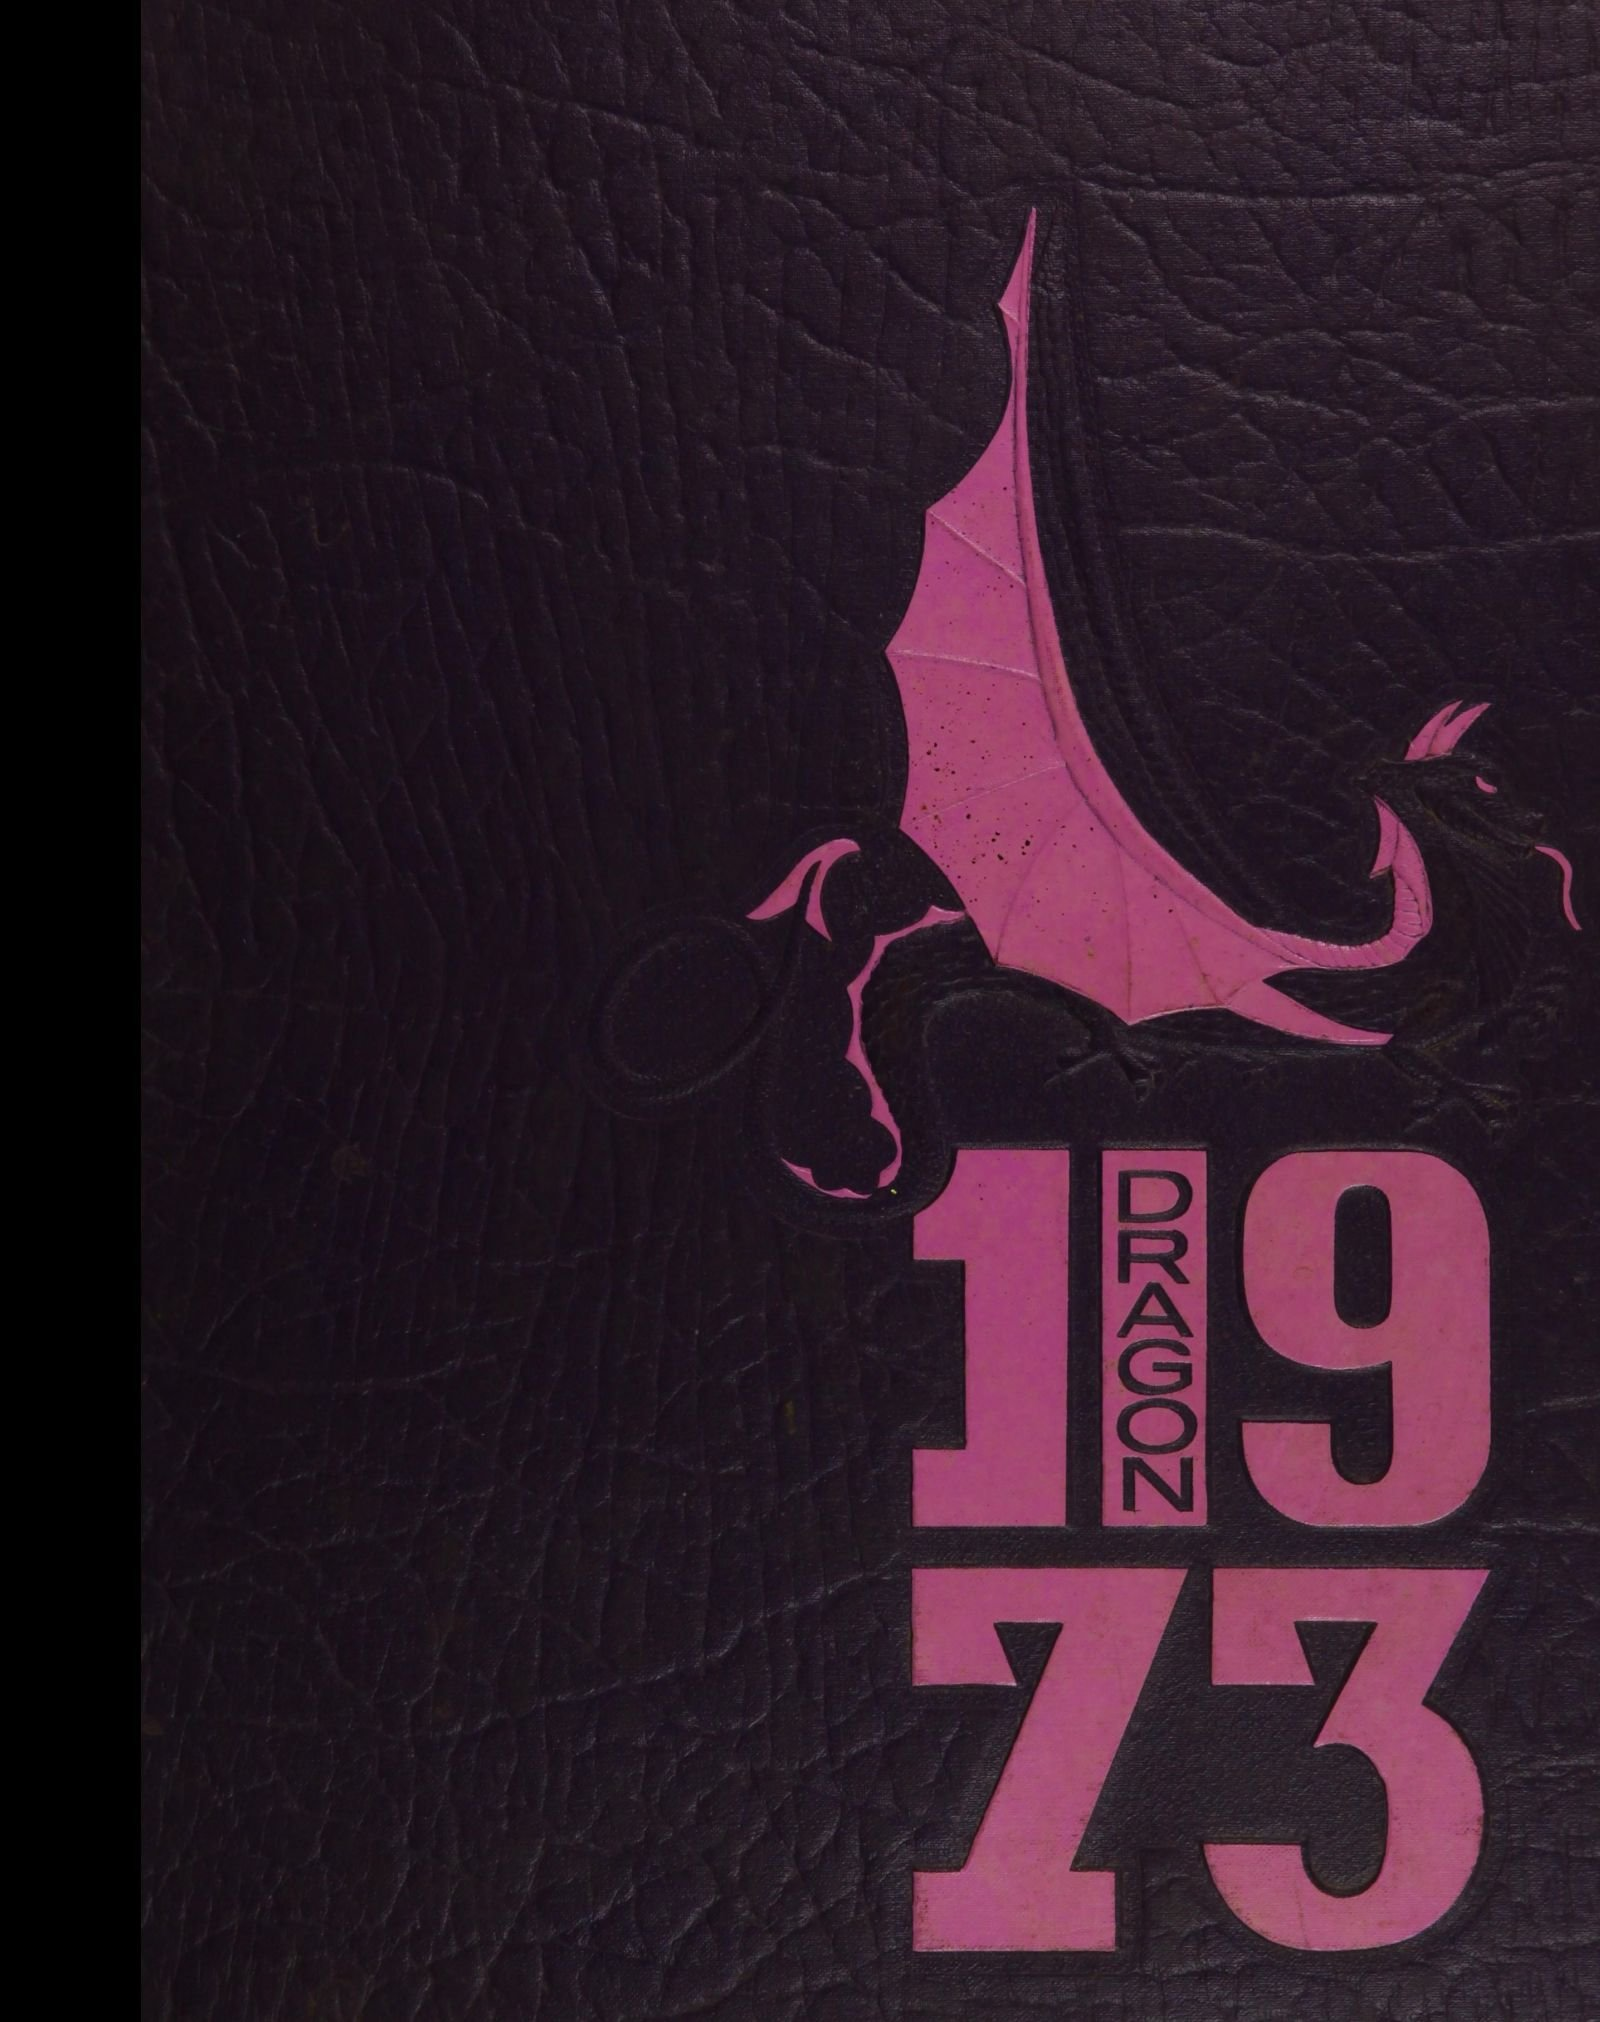 Reprint) 1973 Yearbook: Fairmont West High School (1965-1983 ...